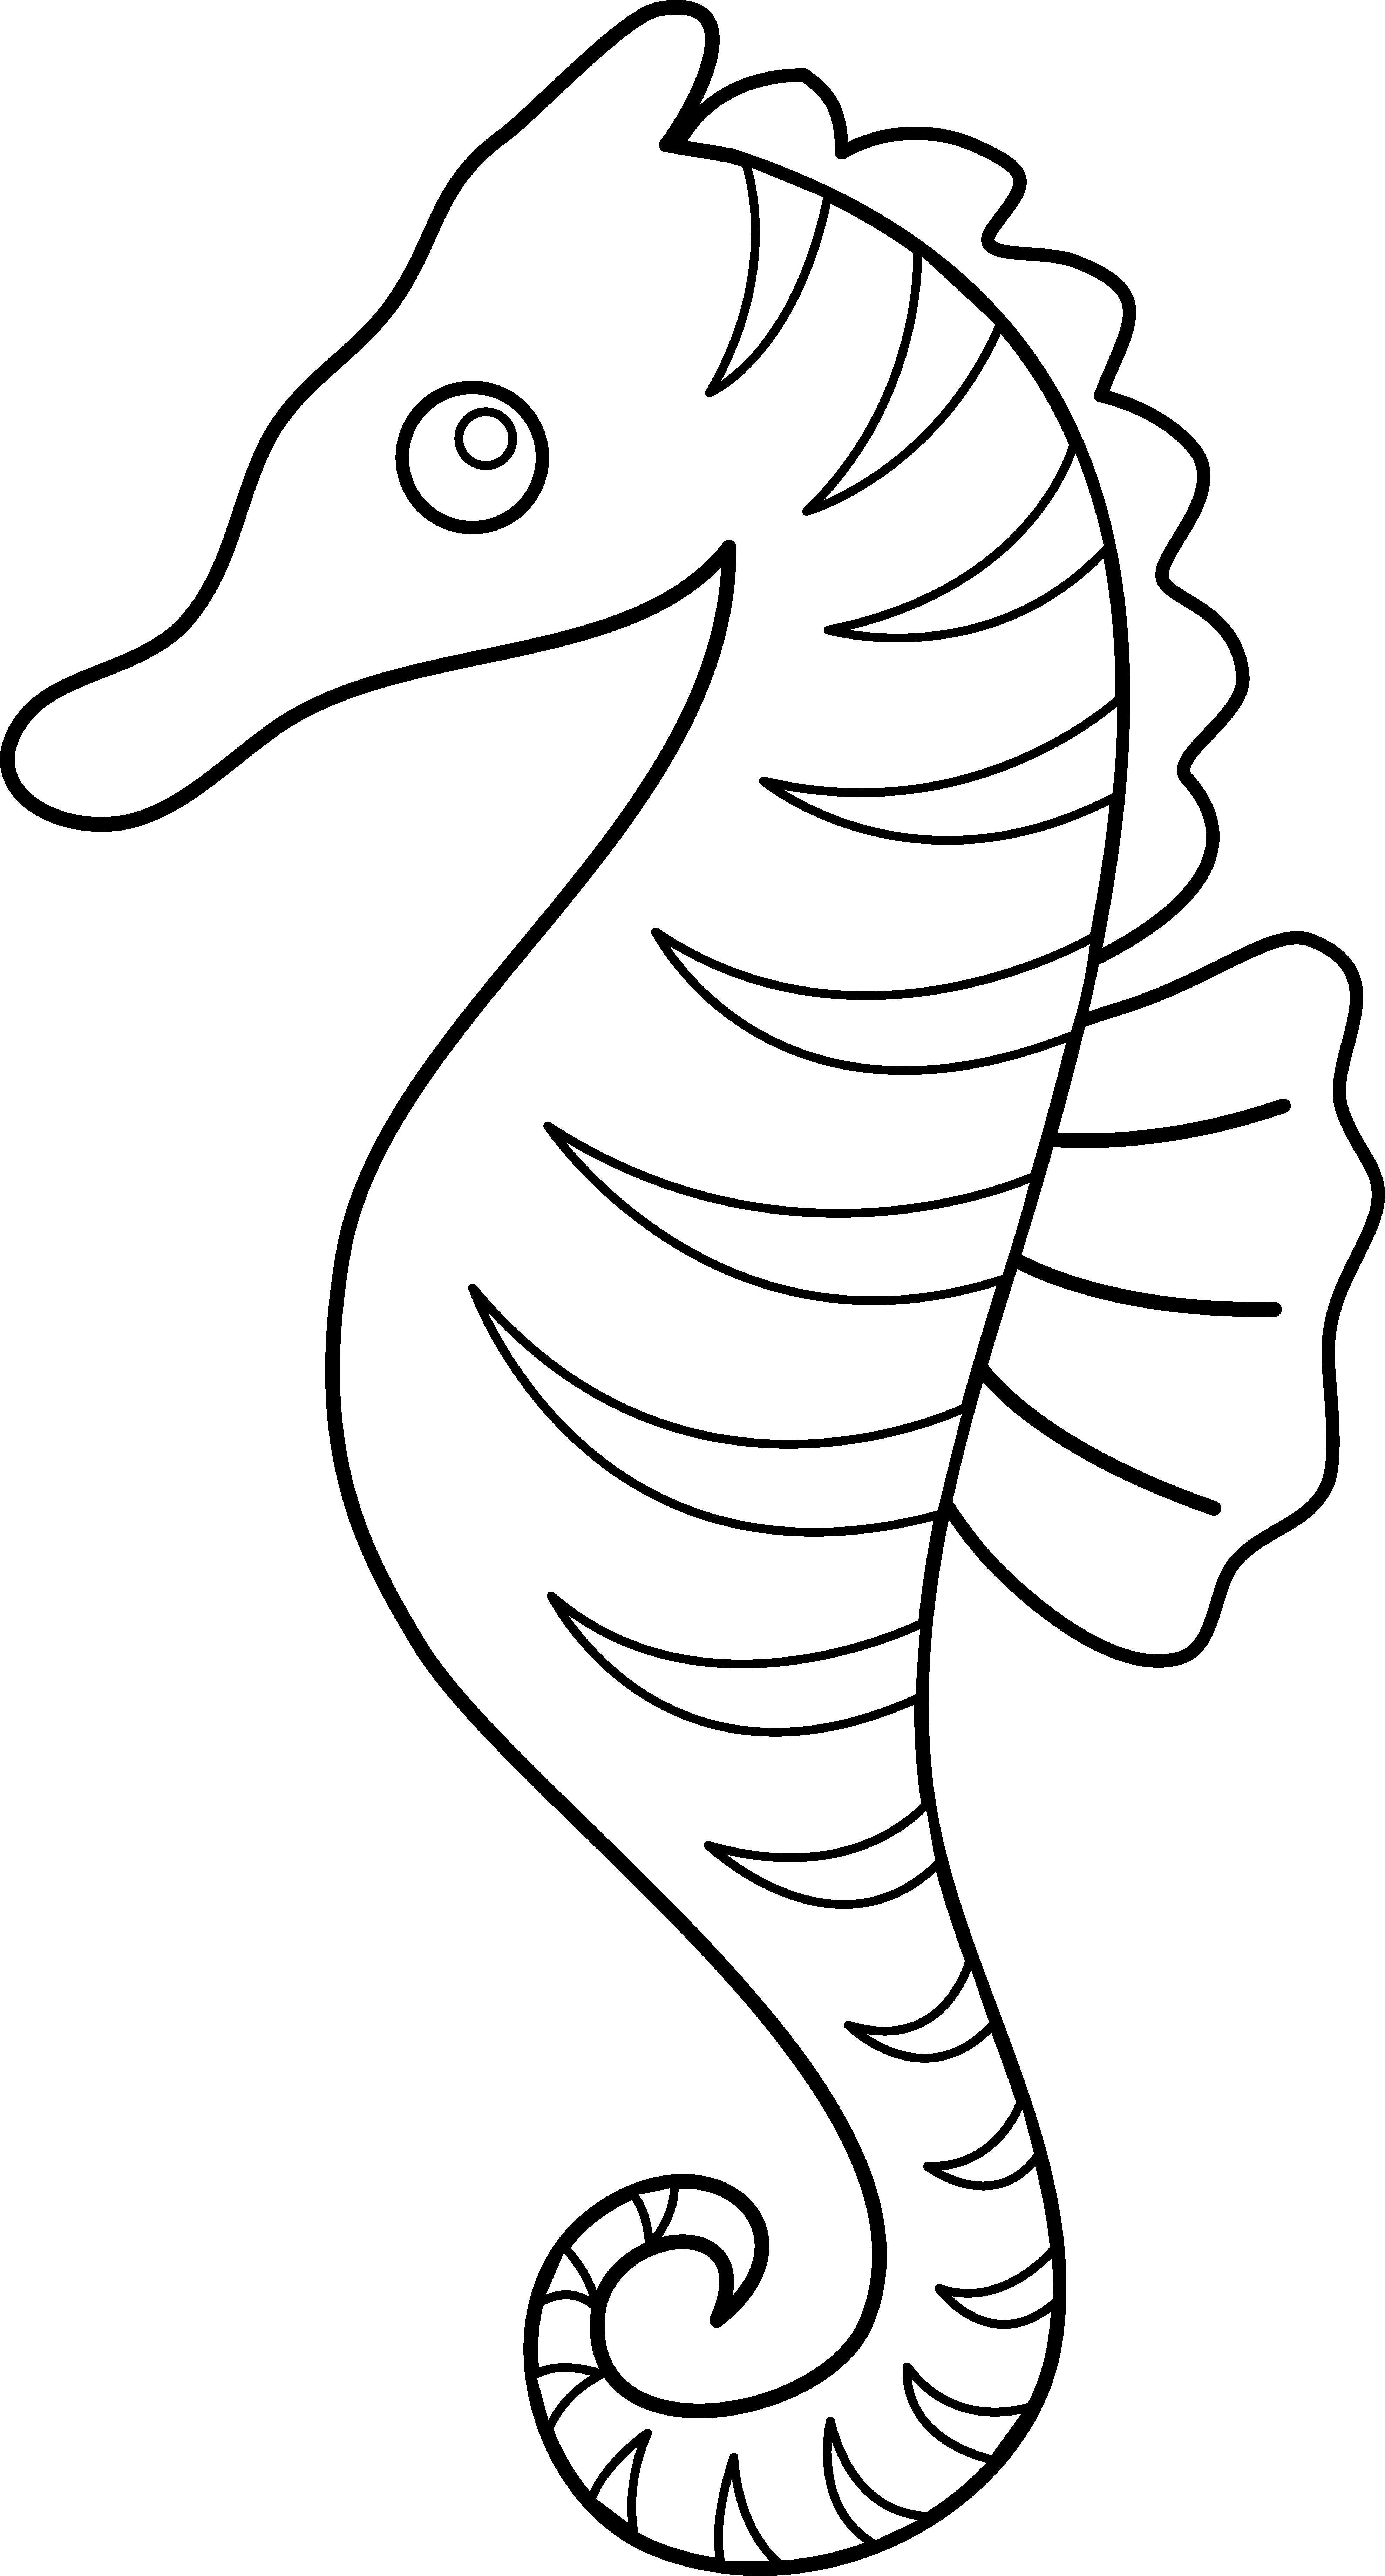 Seahorse Drawing Google Search Horse Coloring Pages Fish Coloring Page Free Clip Art